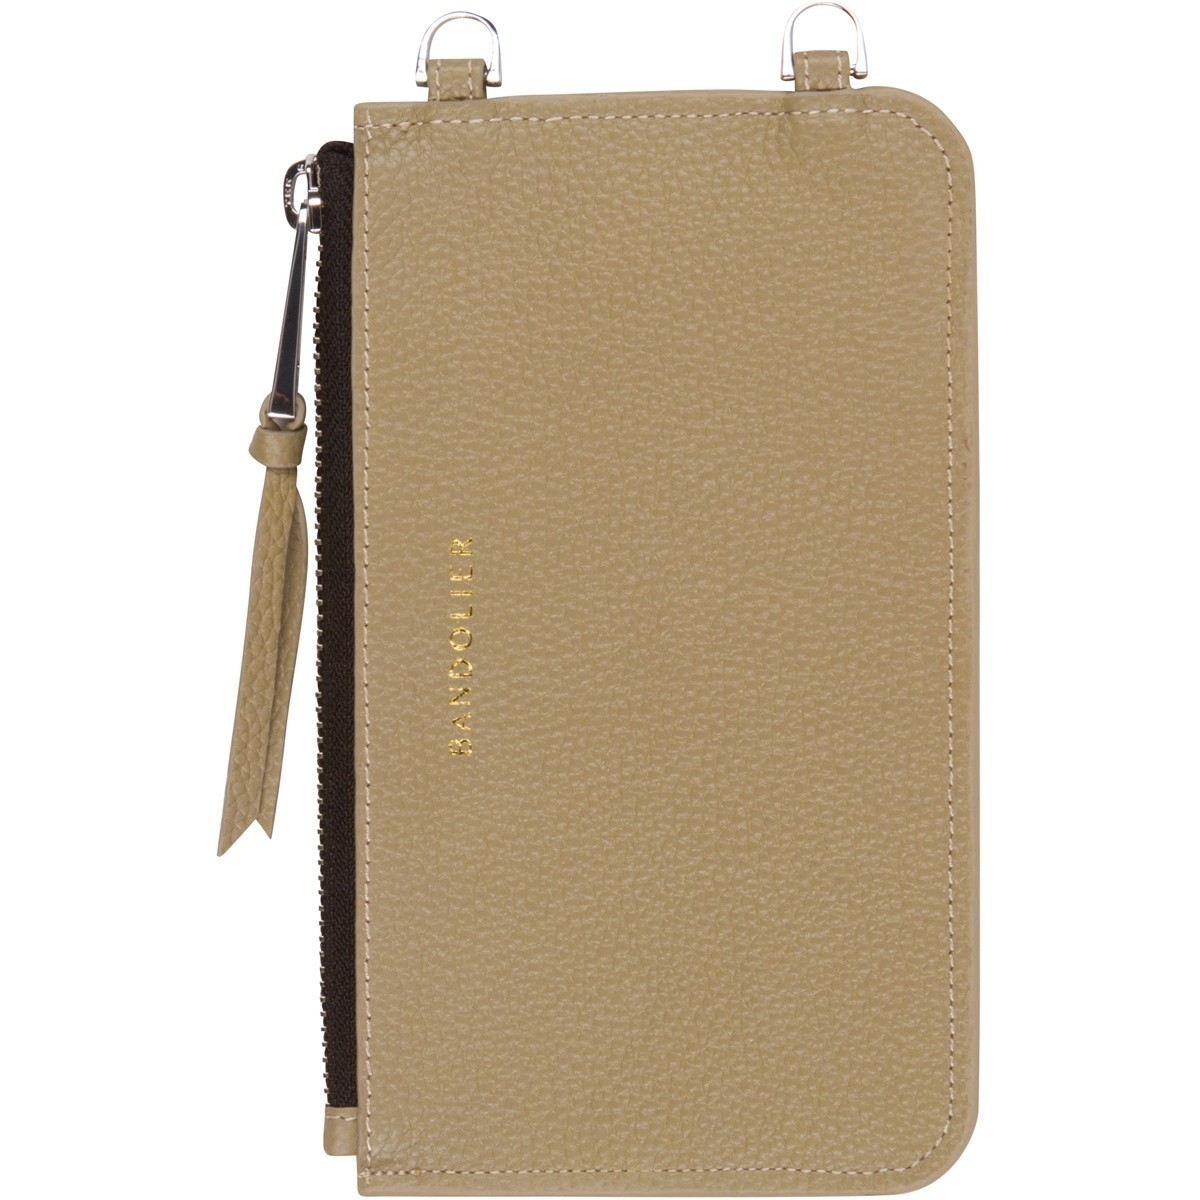 The Emma Pouch - Fits all sizes iphoneケース